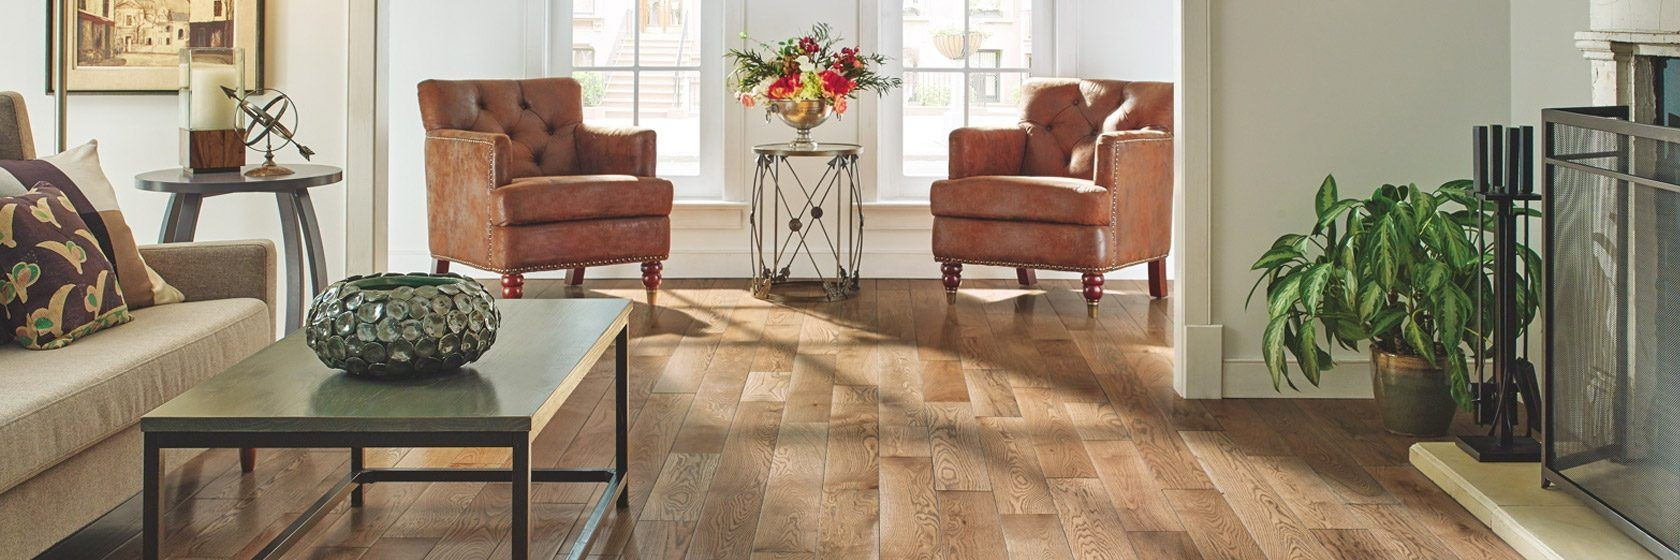 Hardwood Flooring Maine Of 17 Fresh Hardwood Laminate Flooring Pictures Dizpos Com Pertaining to Hardwood Laminate Flooring New Oak solid Hardwood Hay Ground Saktb39l4hgw is Part Of the Pics Of